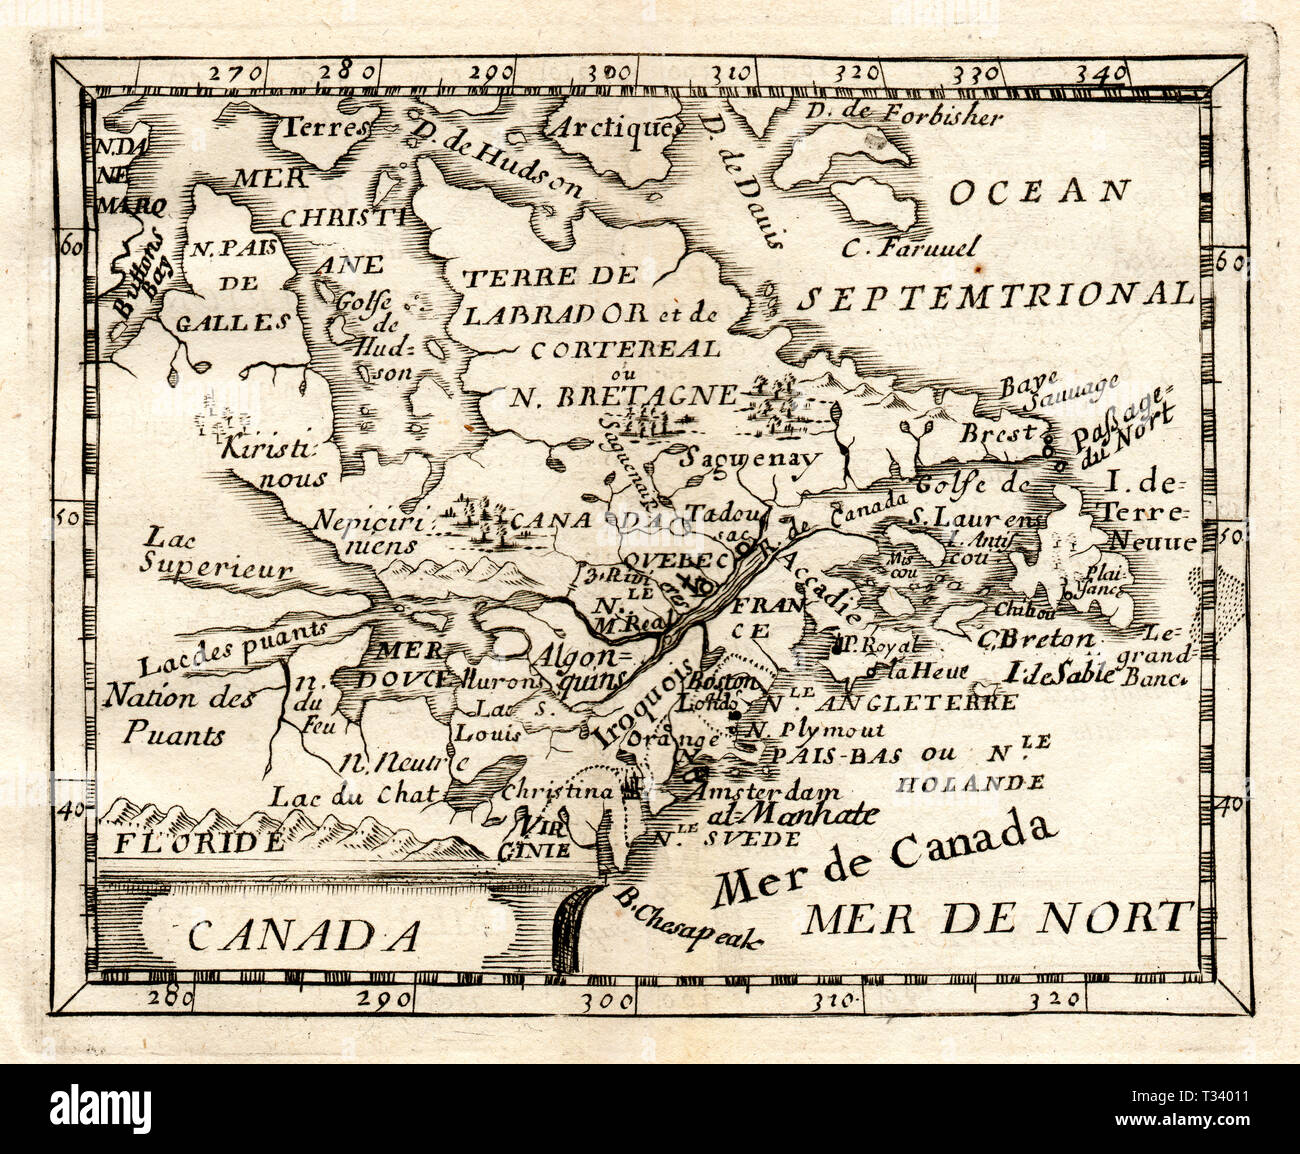 Map Of Canada New Brunswick.Antique Map Of Canada And New England Showing Nova Scotia New